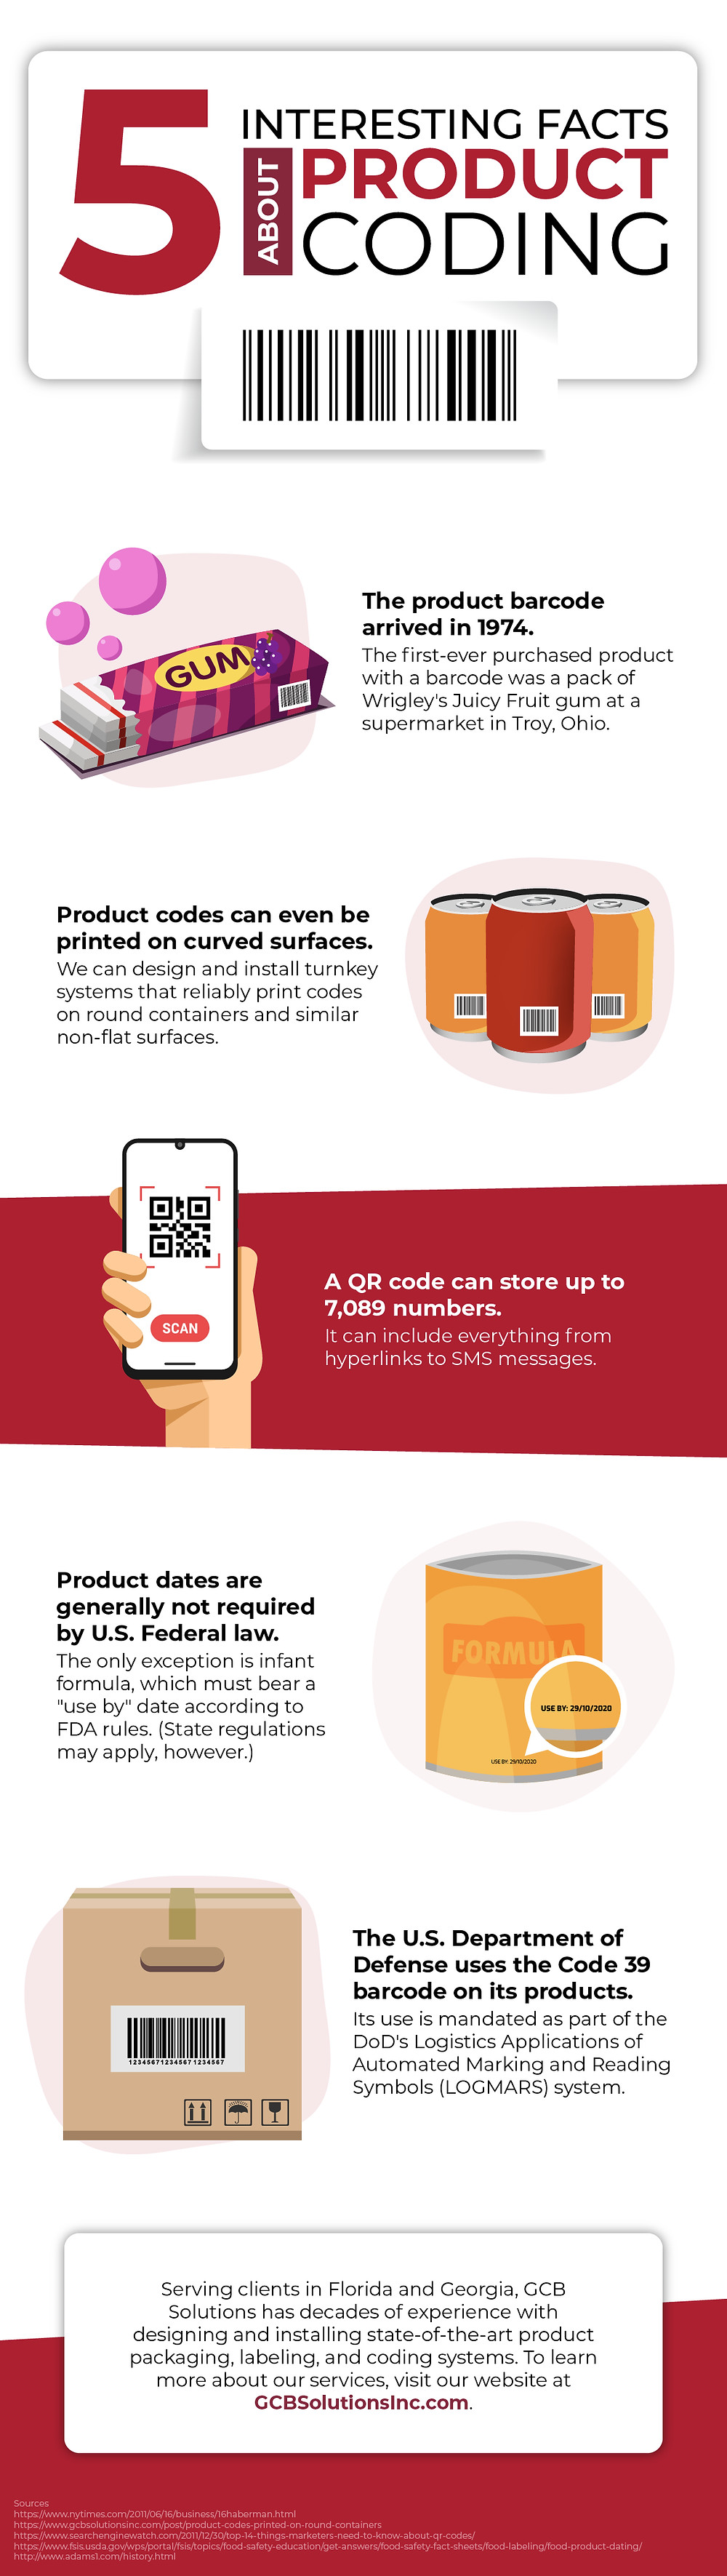 5 Interesting Facts Abour Product Coding (Infographic)